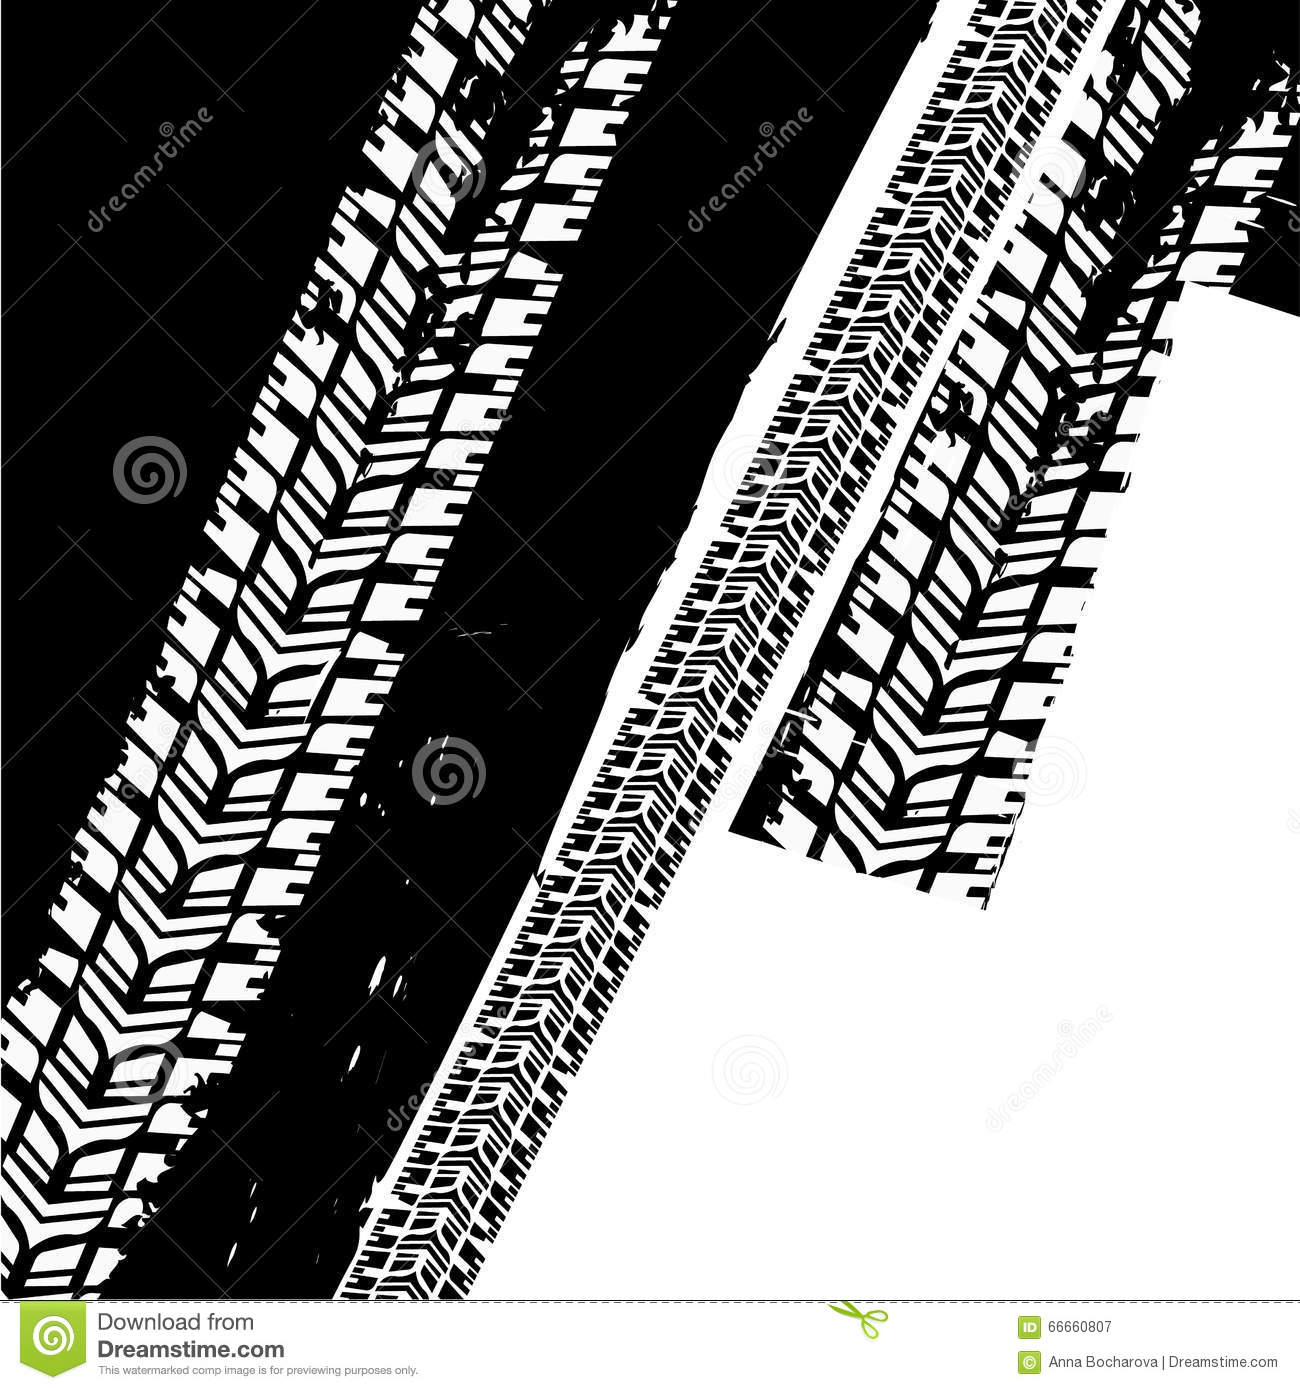 grunge tire tread  skid mark vector illustration cartoondealercom